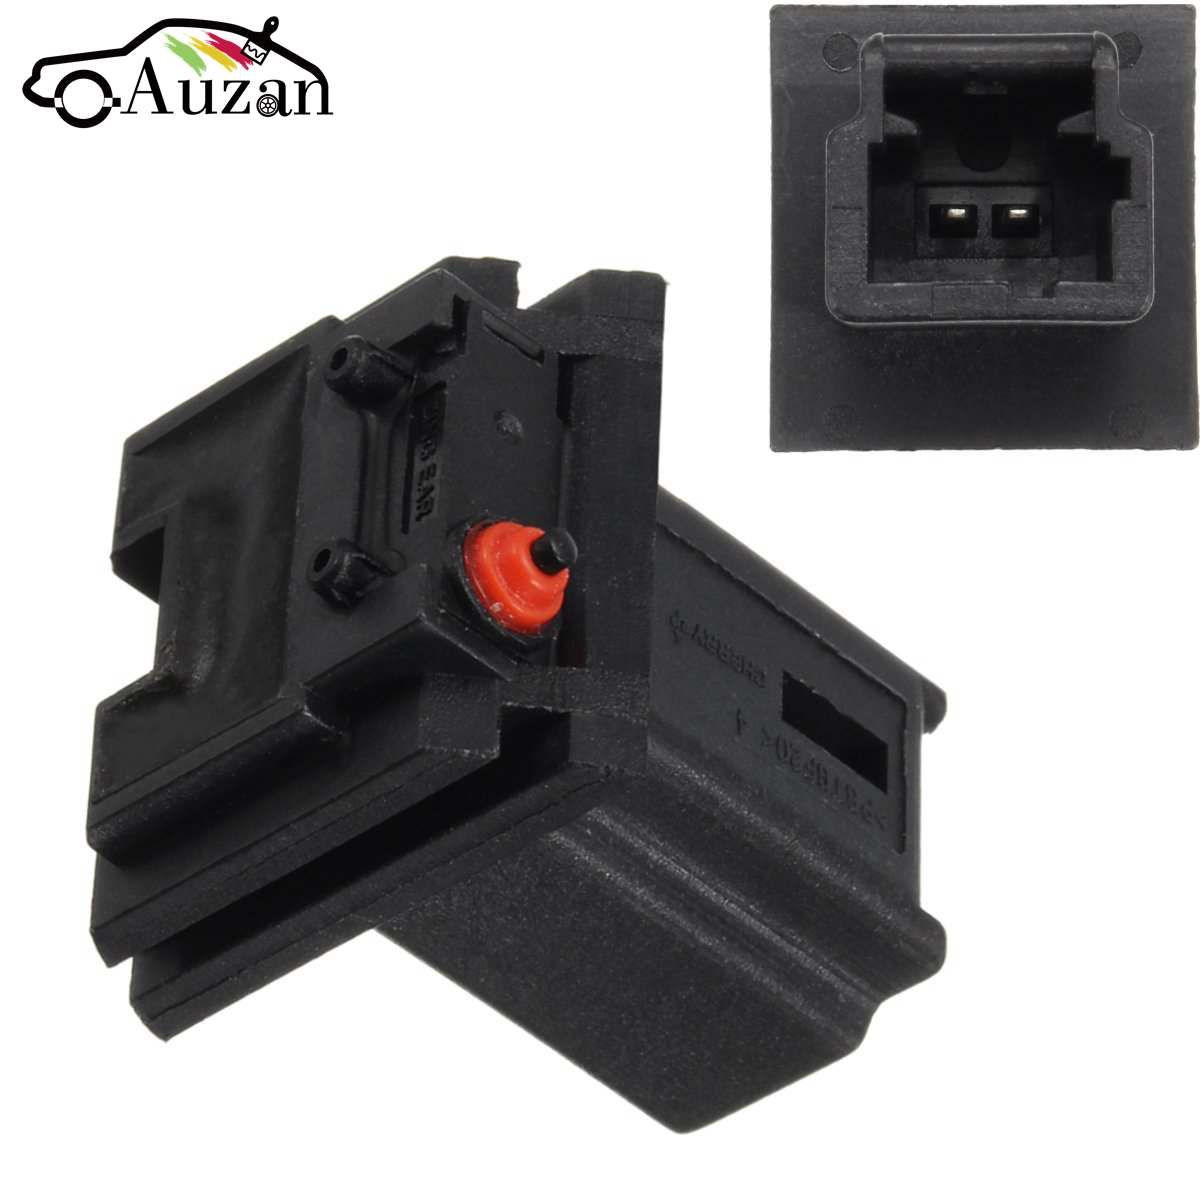 Black Tailgate Boot Micro Switch For Citroen C3 C4 C3 for Peugeot 206 307 308 407 6554V5 cl160162 citilux